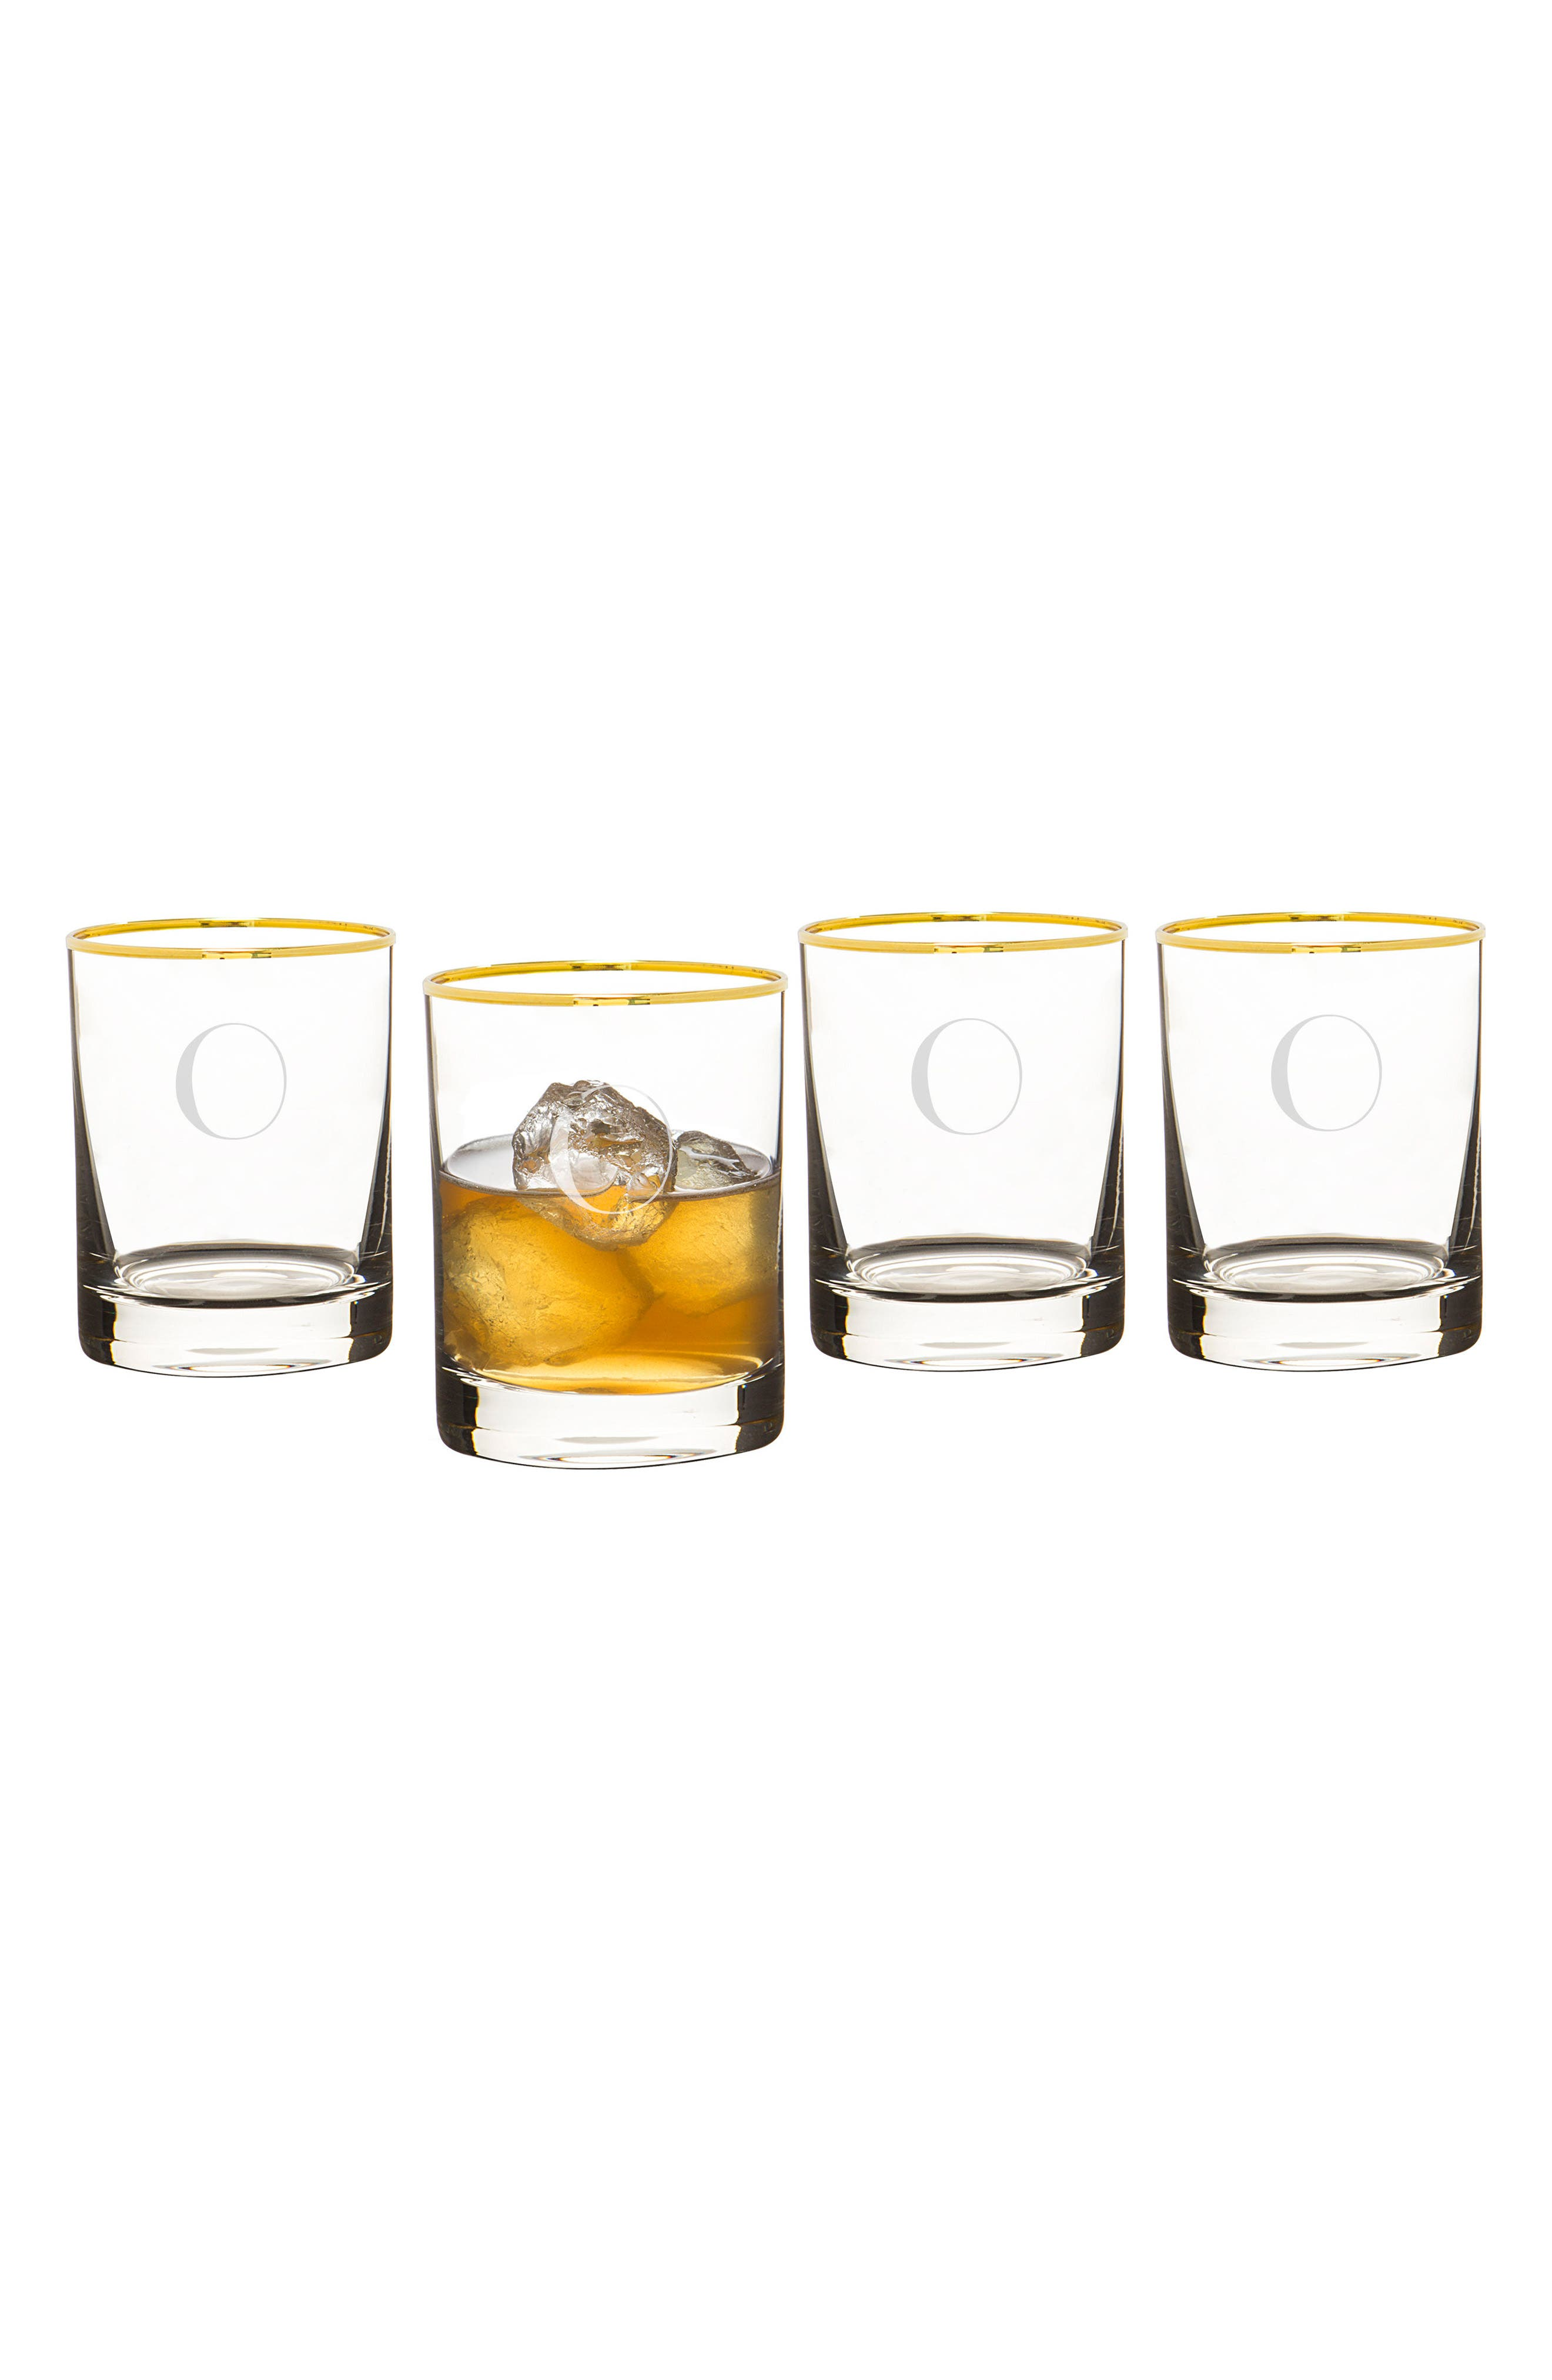 Monogram Set of 4 Double Old Fashioned Glasses,                             Main thumbnail 16, color,